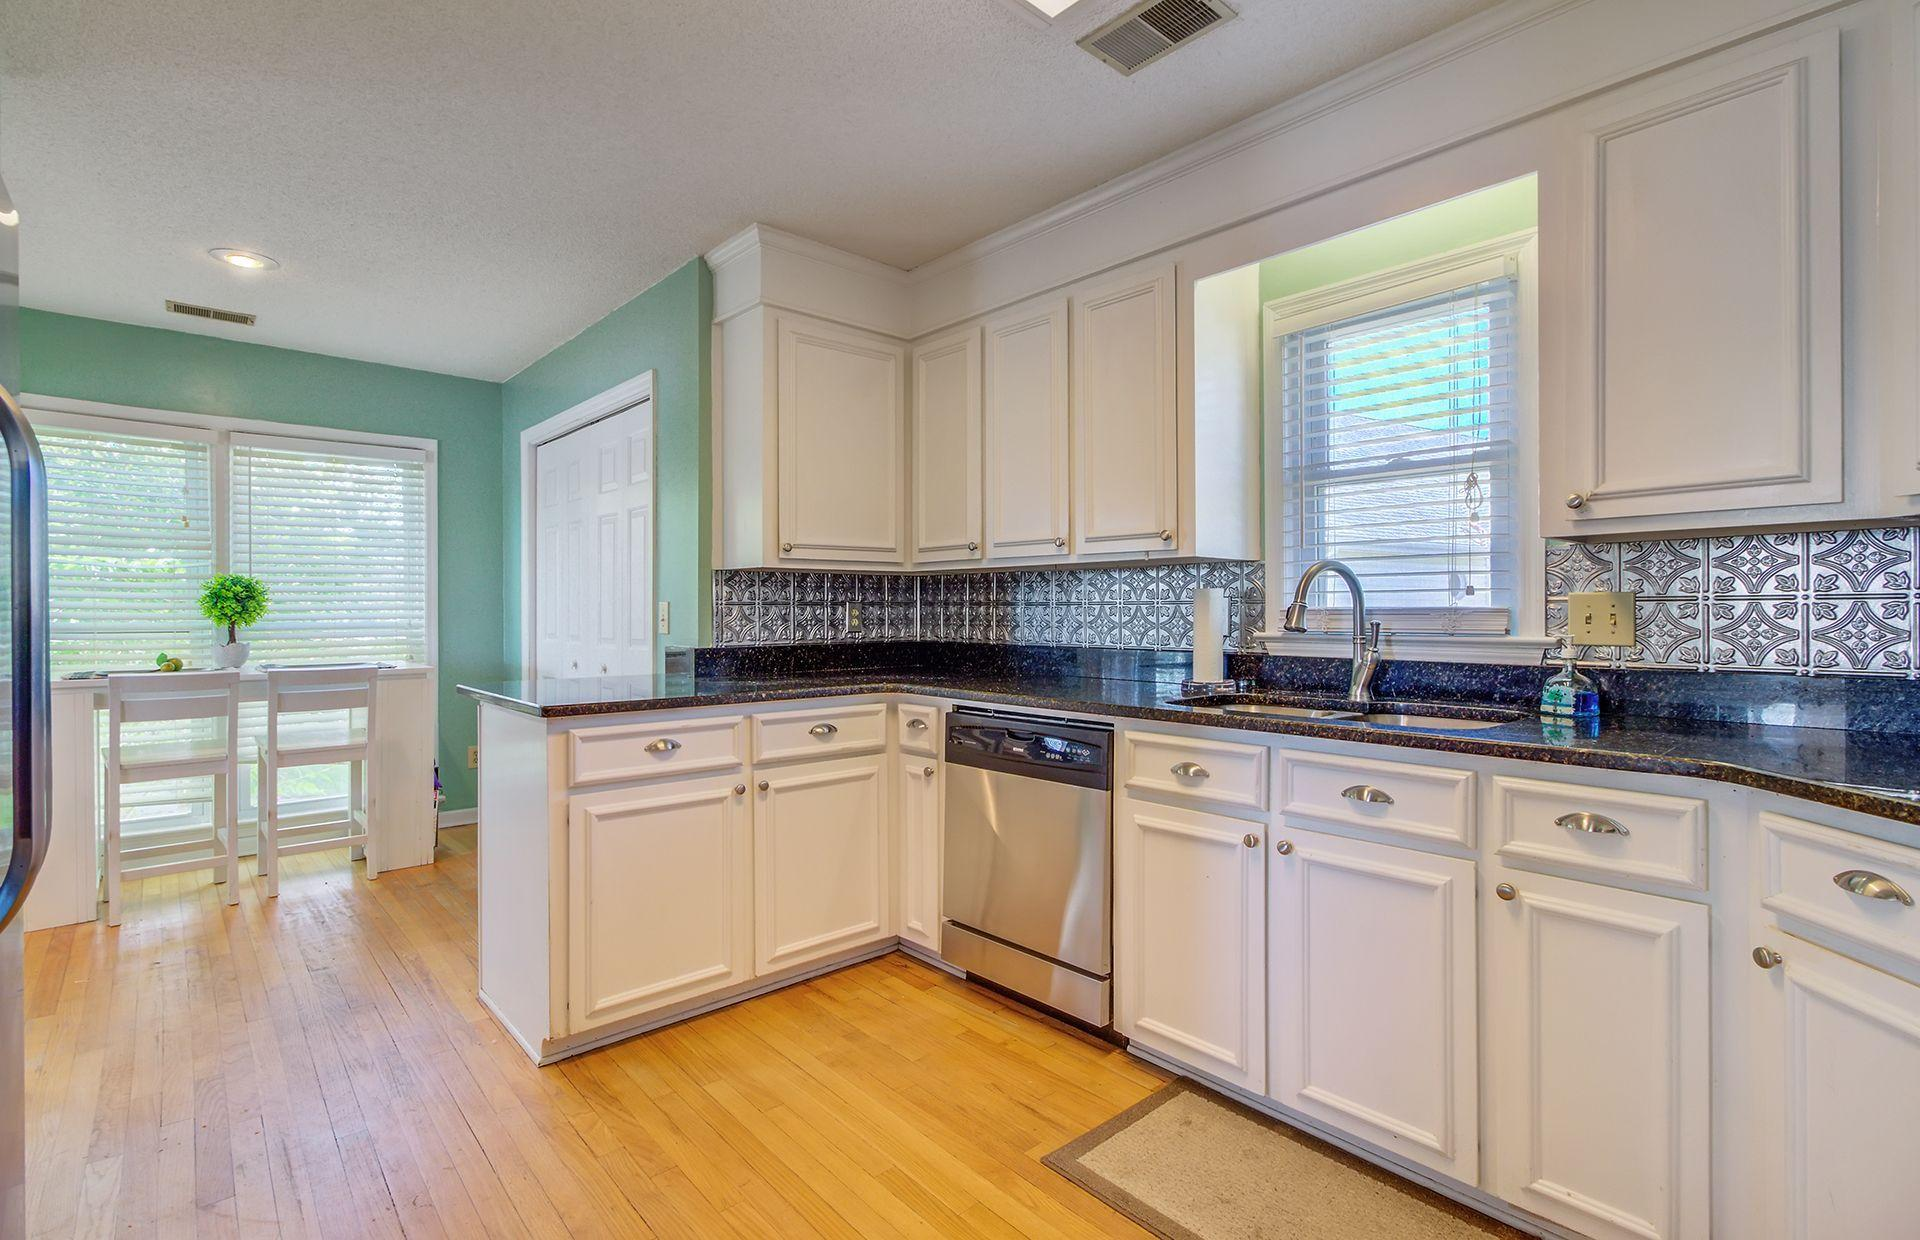 Old Mt Pleasant Homes For Sale - 1543 Privateer, Mount Pleasant, SC - 20